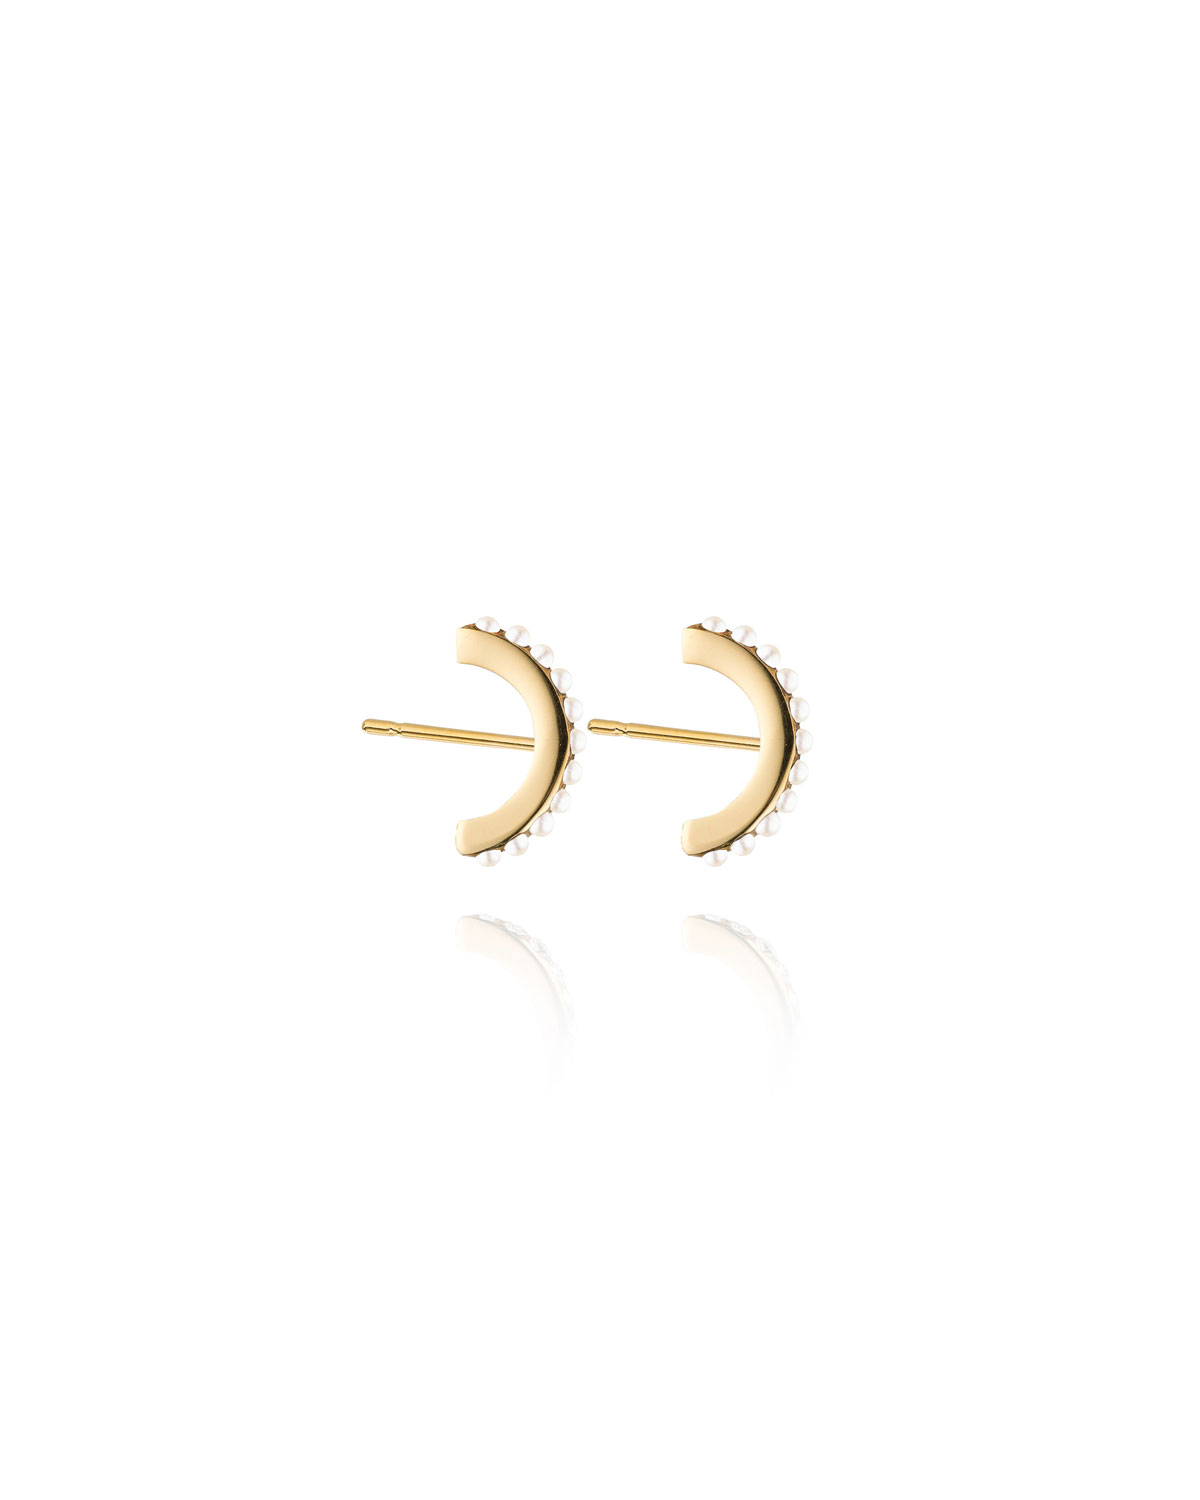 Vita Fede Luna Pearly Hoop Stud Earrings yDmPa8d3dI